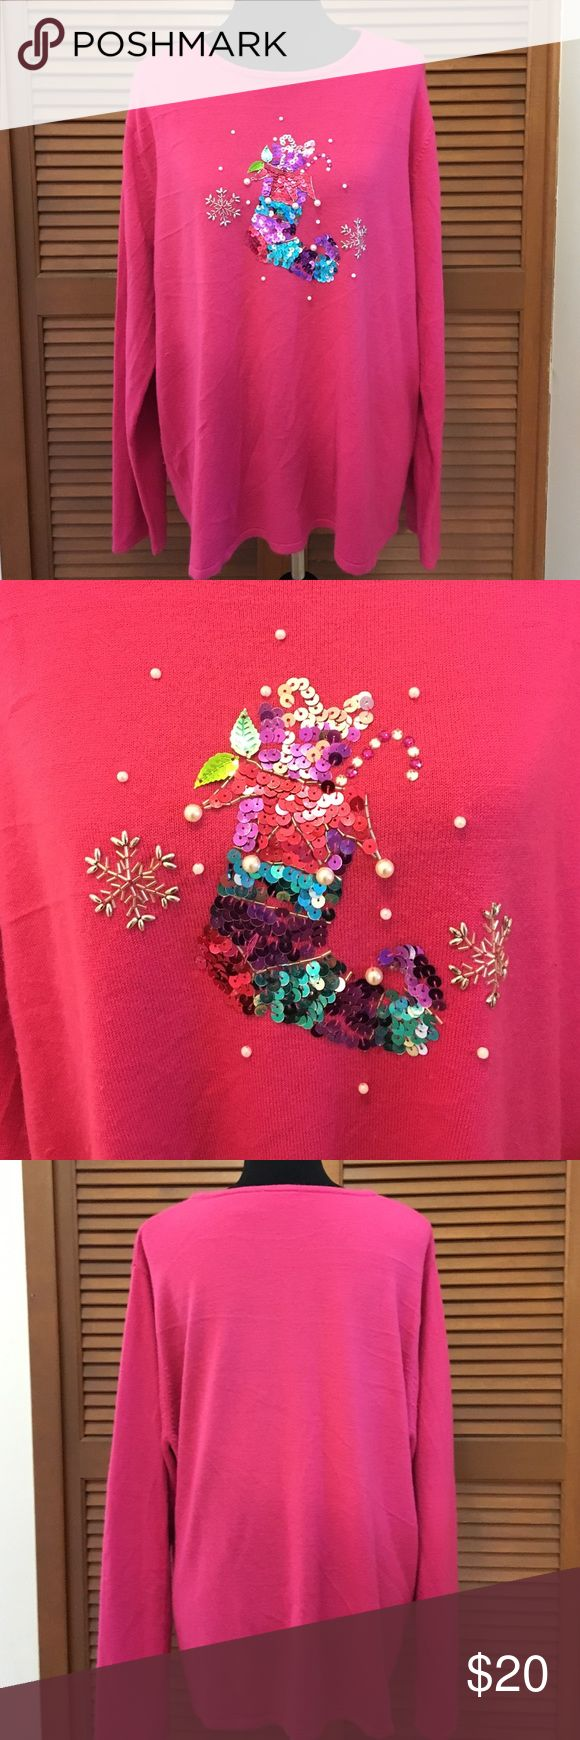 Fieldgear plus size Christmas sweater 3X pink Who says all Christmas sweaters have to be green and red?!? Sweater has a bead and sequin stocking and snowflake design. 100% acrylic. Fieldgear Sweaters Crew & Scoop Necks